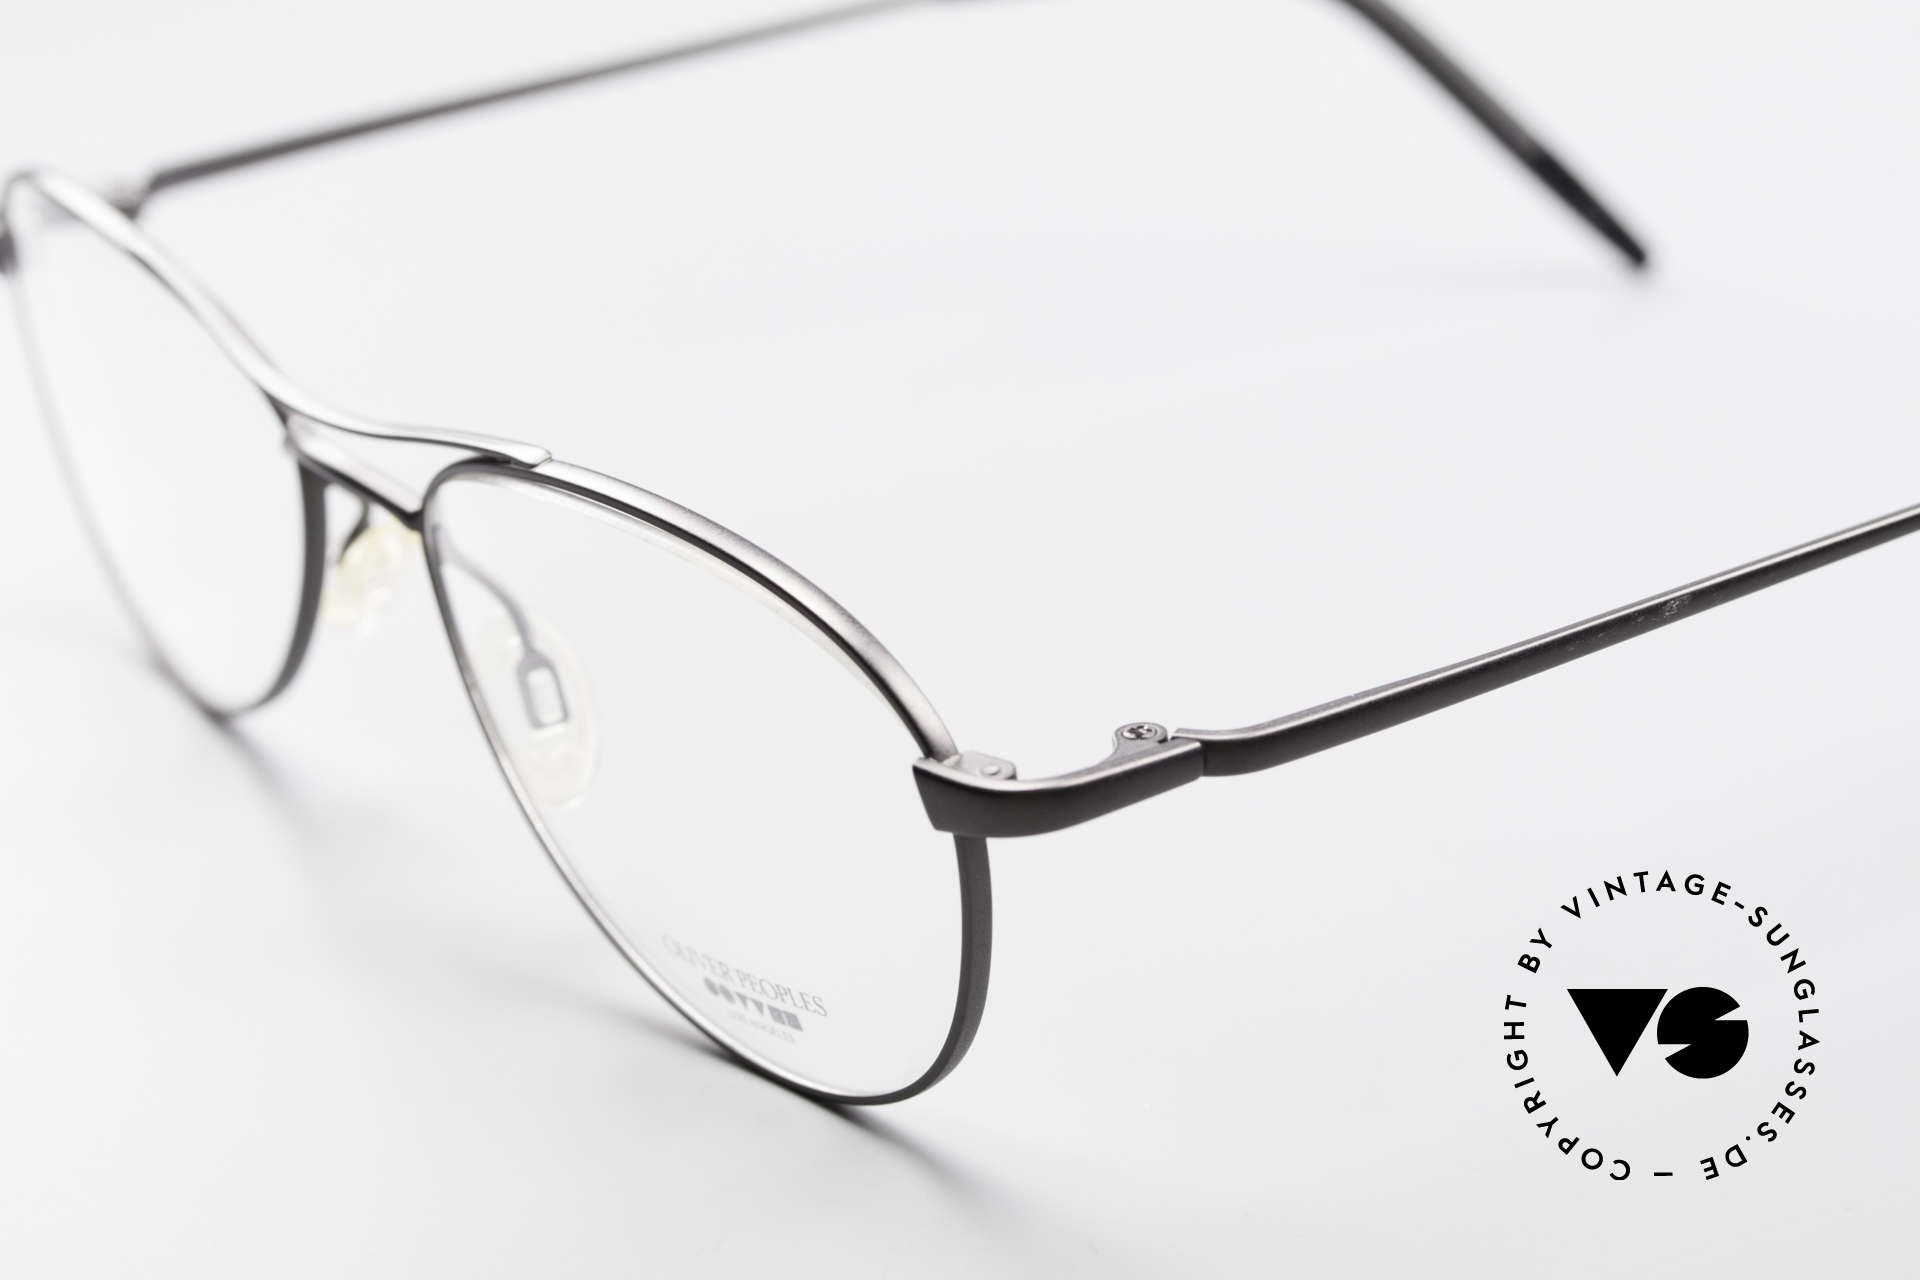 Oliver Peoples Aero Extraordinary Aviator Glasses, combined with the intellectual styling of the 1960's, Made for Men